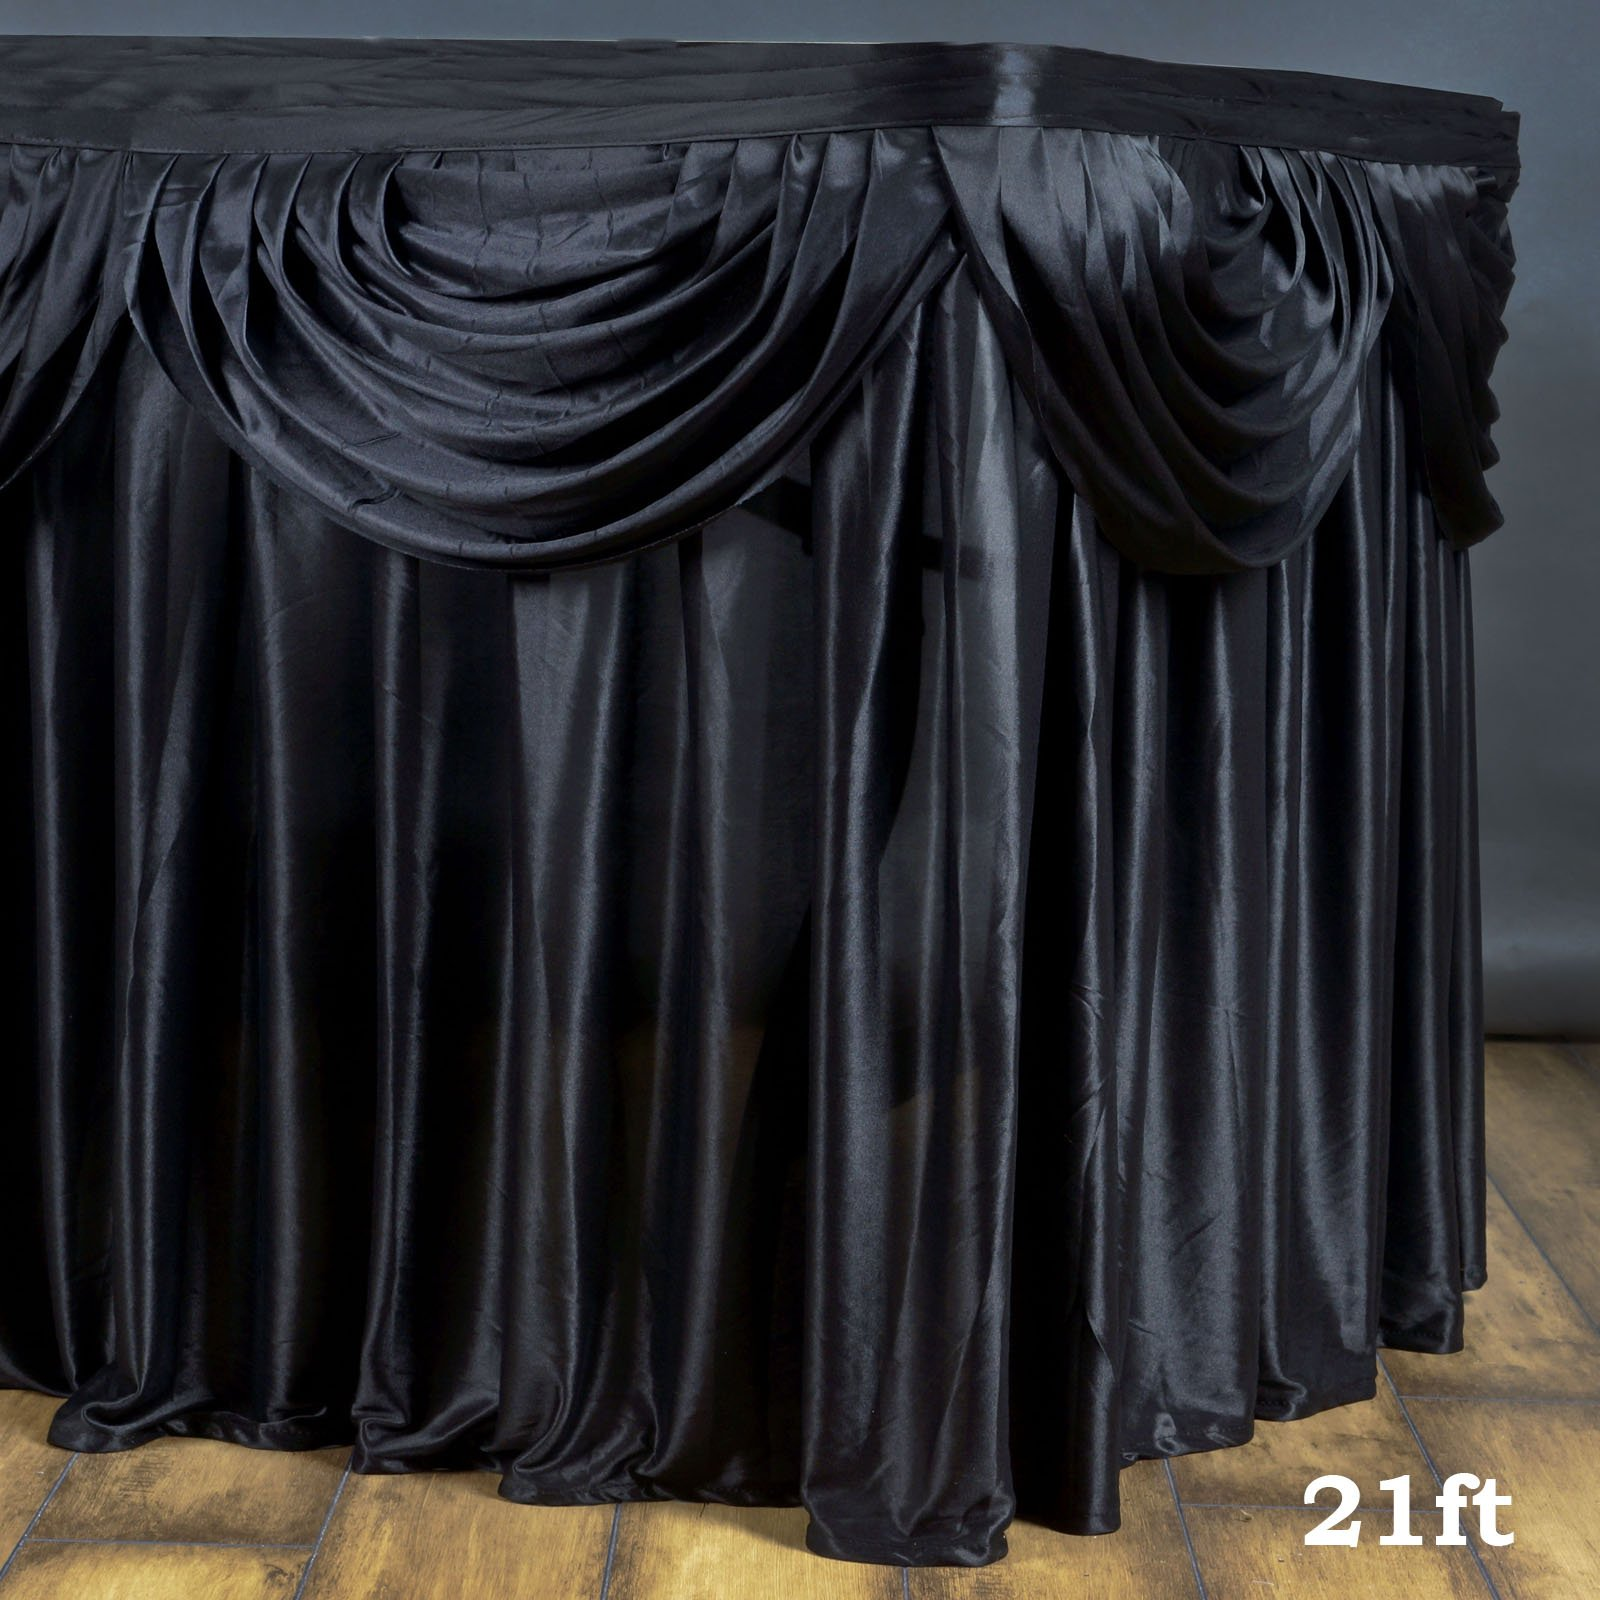 Efavormart Black Satin Double Drape Table Skirt for Kitchen Dining Catering Wedding Birthday Party Decorations Events 21ft